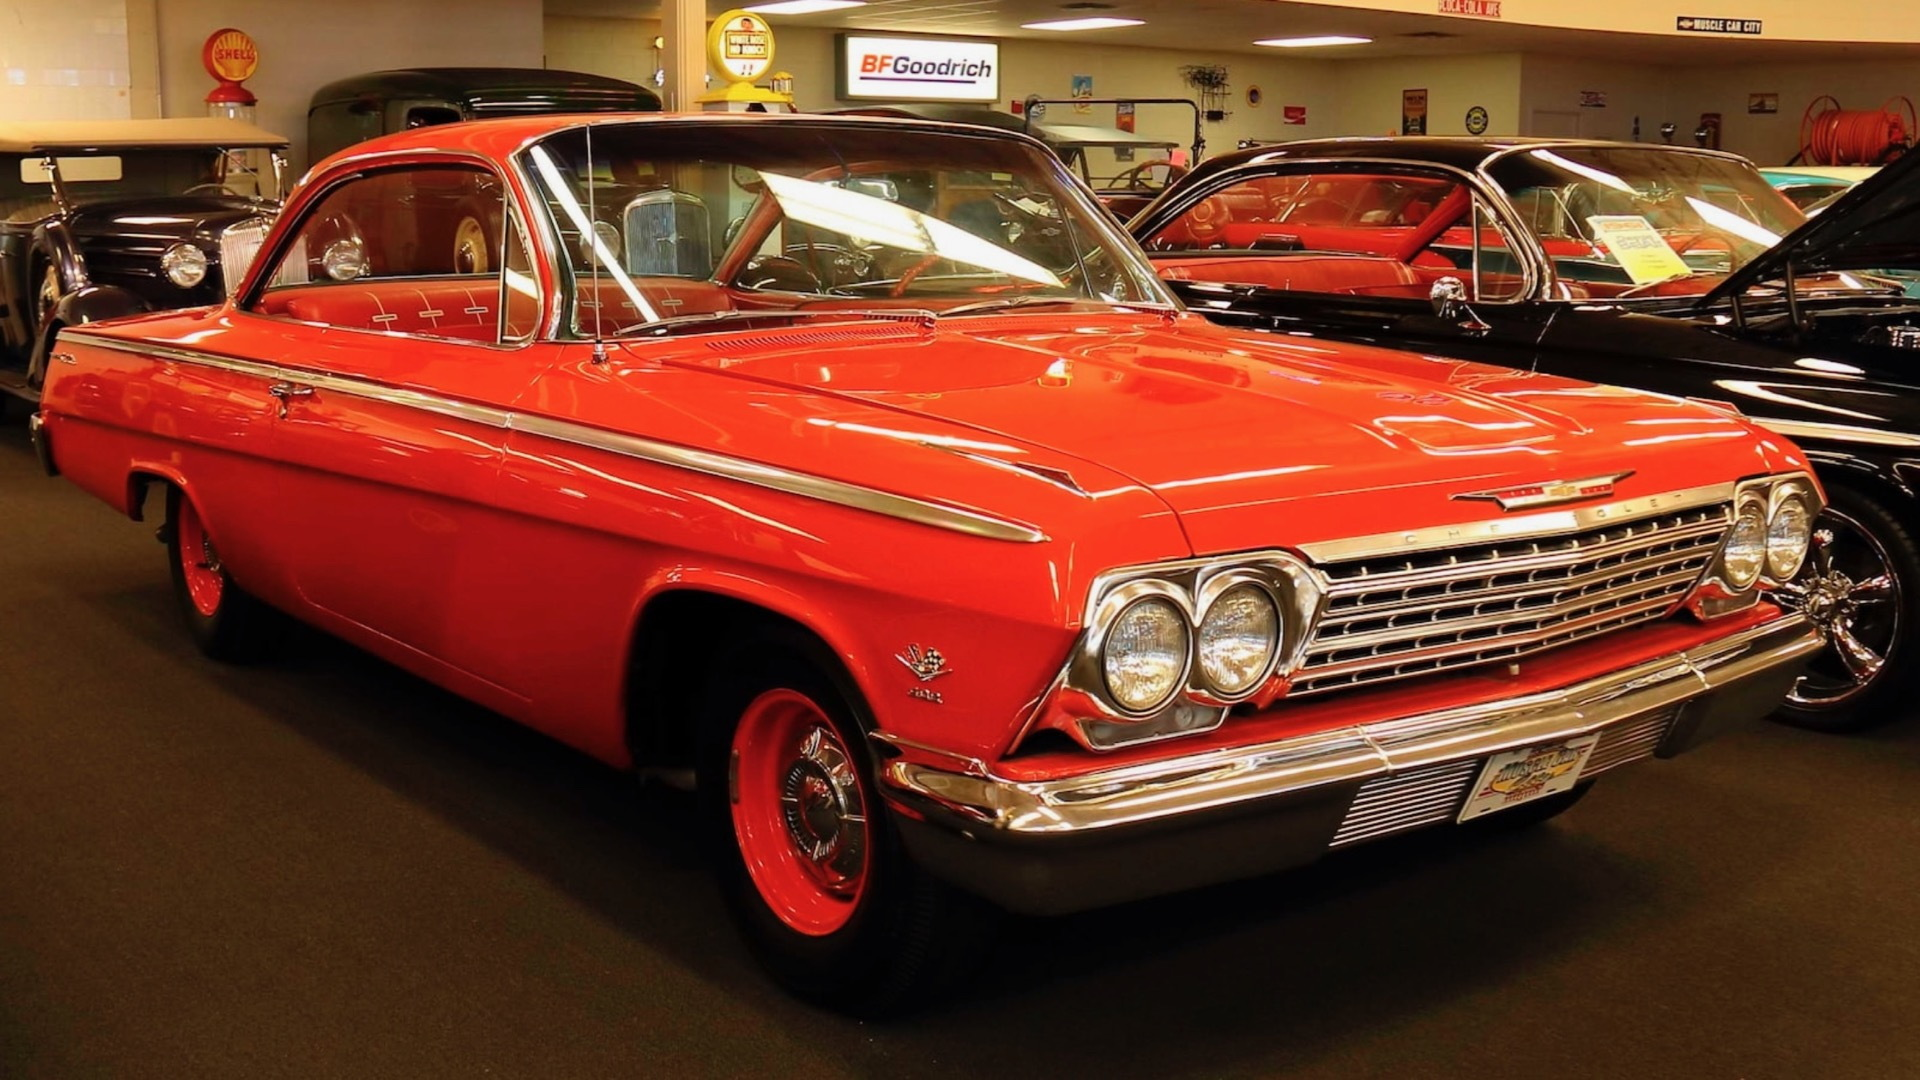 1962 Chevrolet Bel Air bubble top from Rick Treworgy collection (Photo by Mecum Auctions)